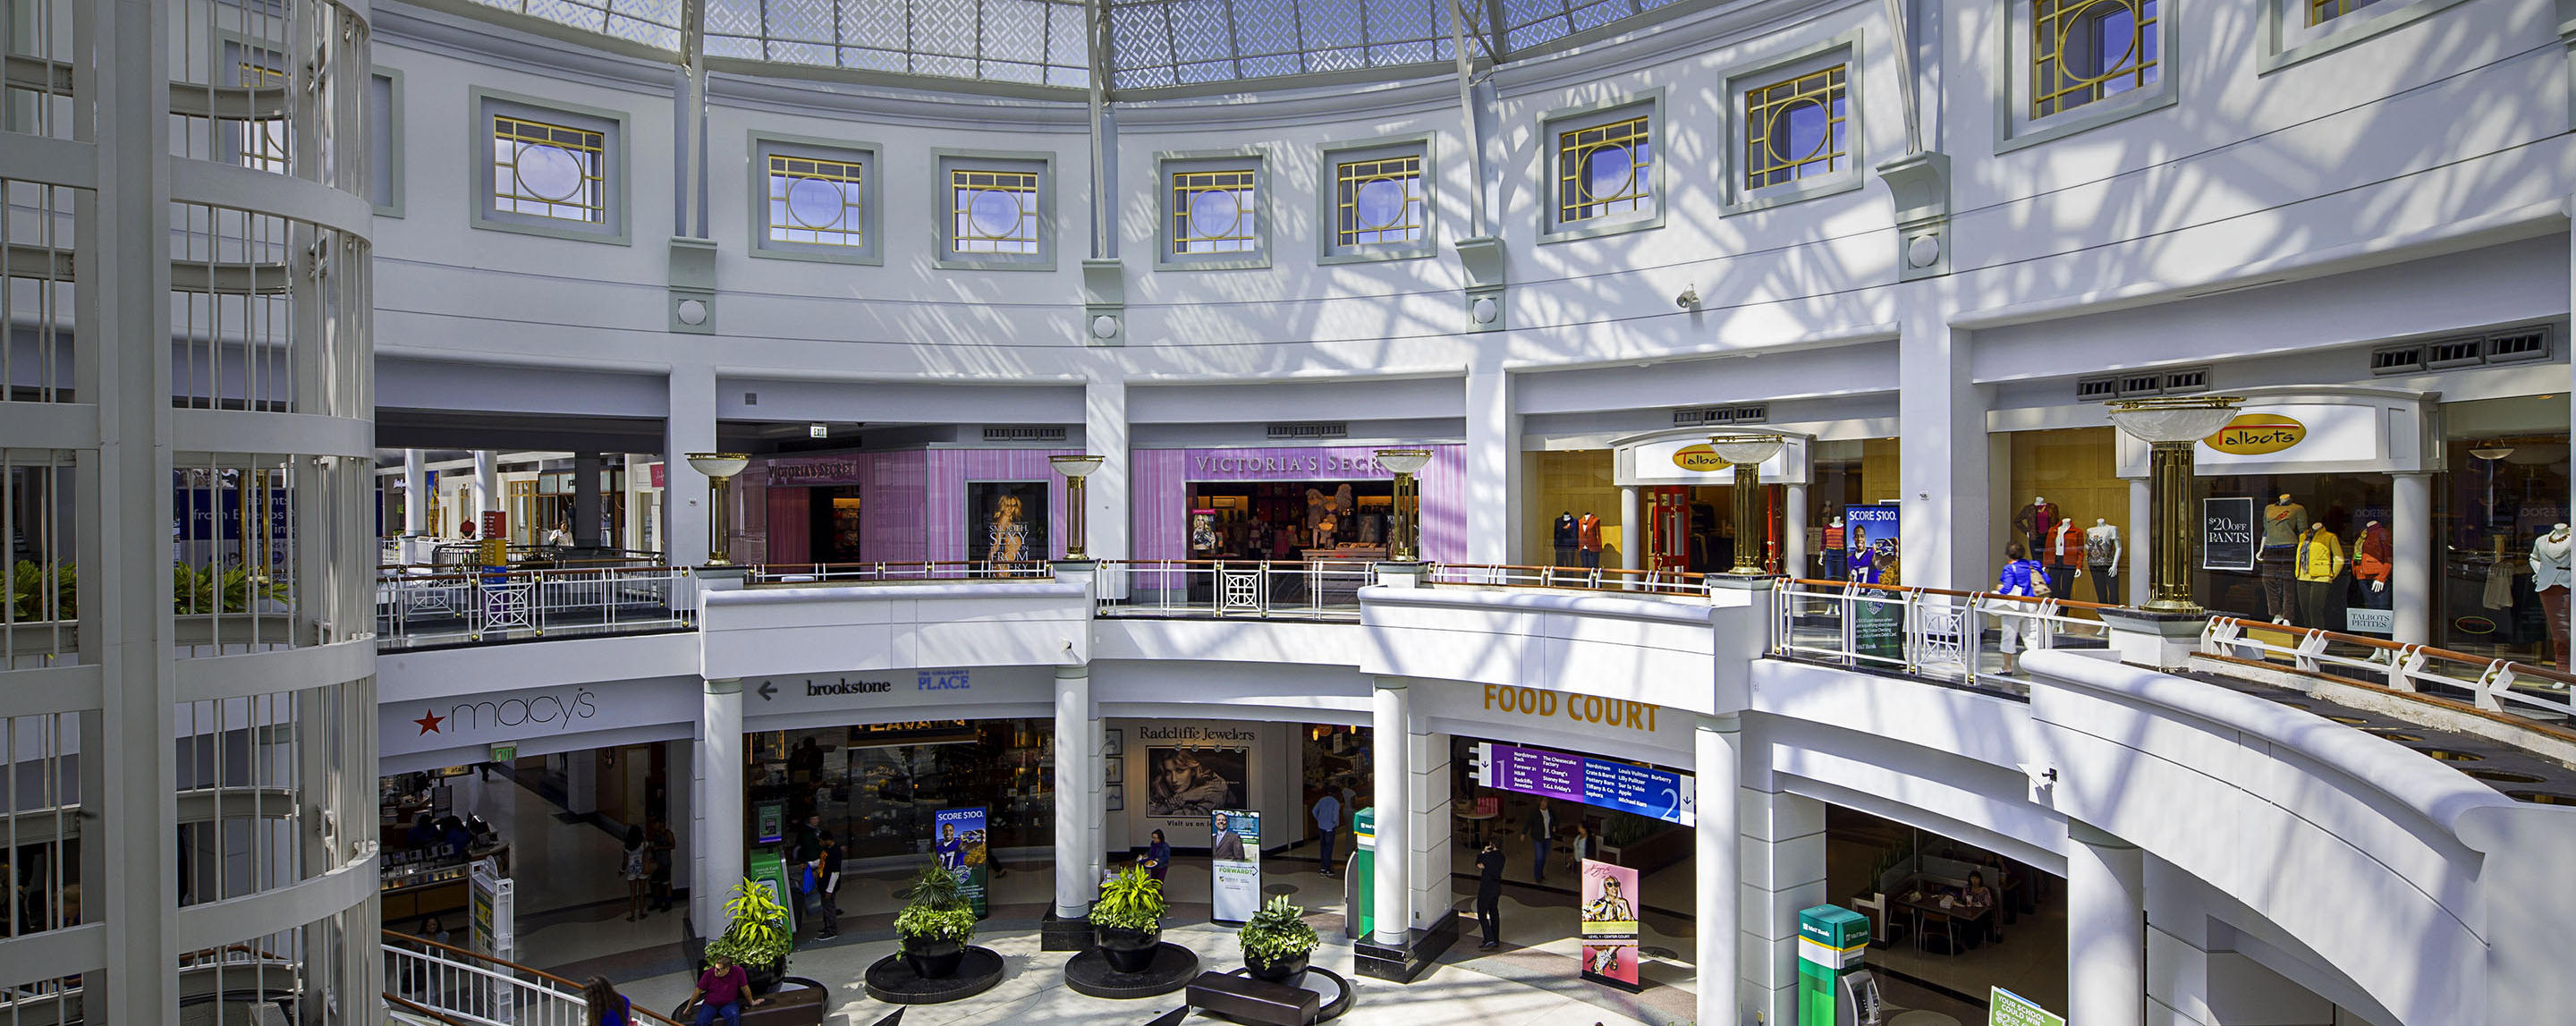 From the second floor of Towson Town Center you can see various storefronts and helpful signs to guide shoppers.